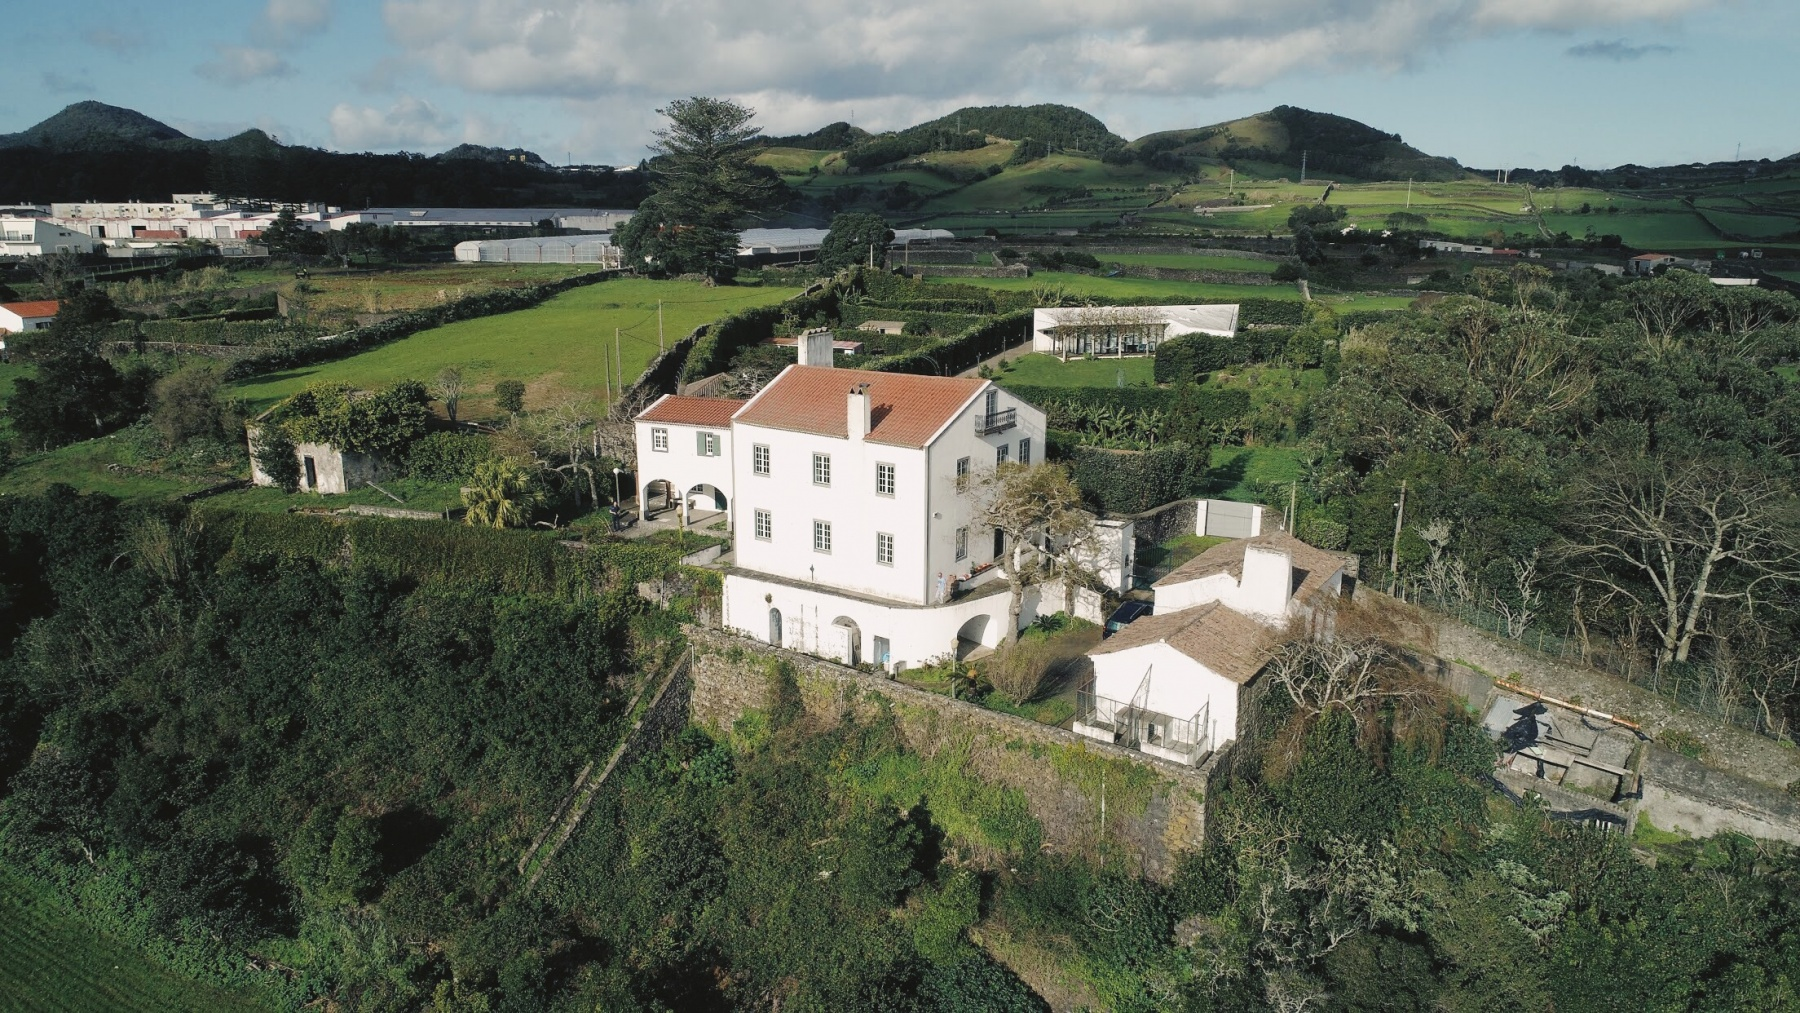 The Estate  - A leading sustainable hotel here in the Azores